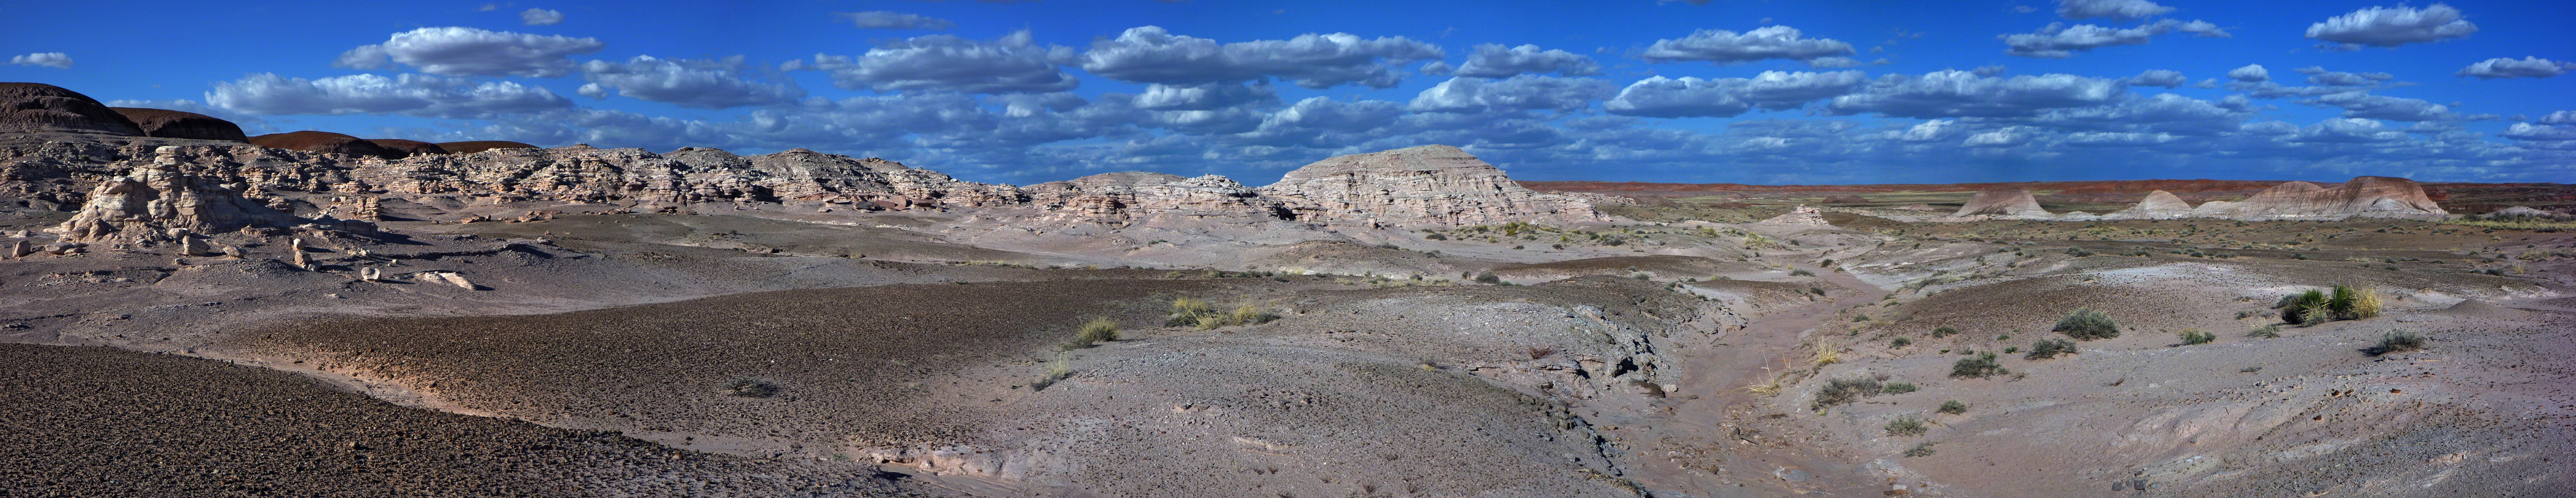 Panorama of badlands and eroded rocks